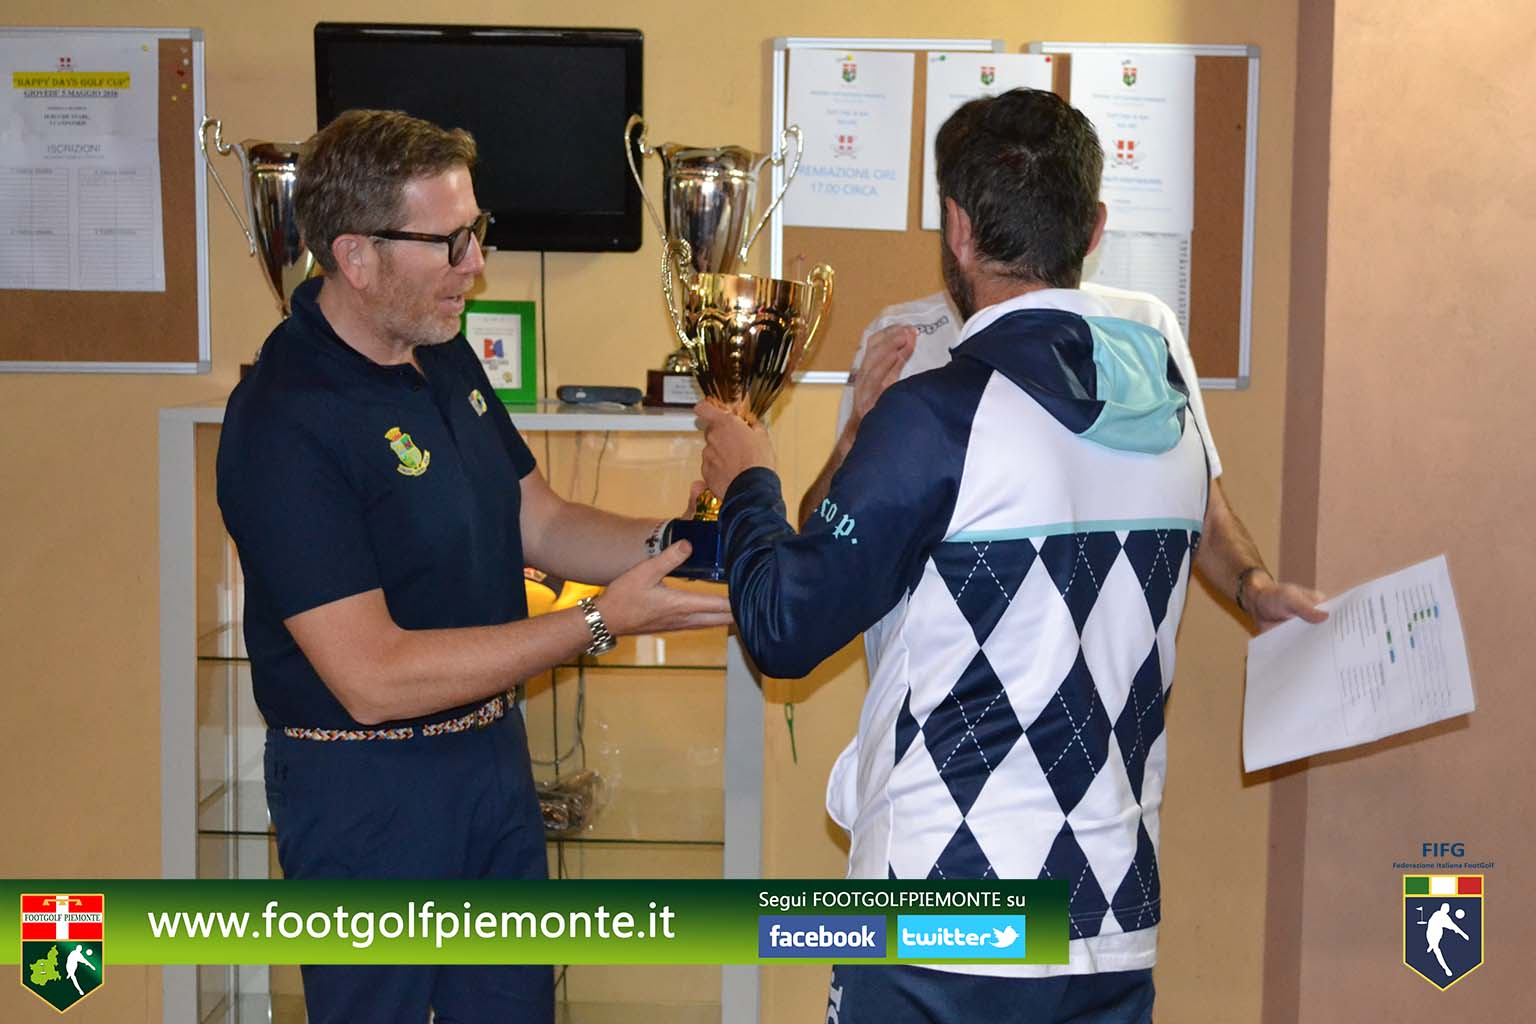 FOTO 9 Regions' Cup Footgolf Piemonte 2016 Golf Città di Asti (At) 30apr16-132